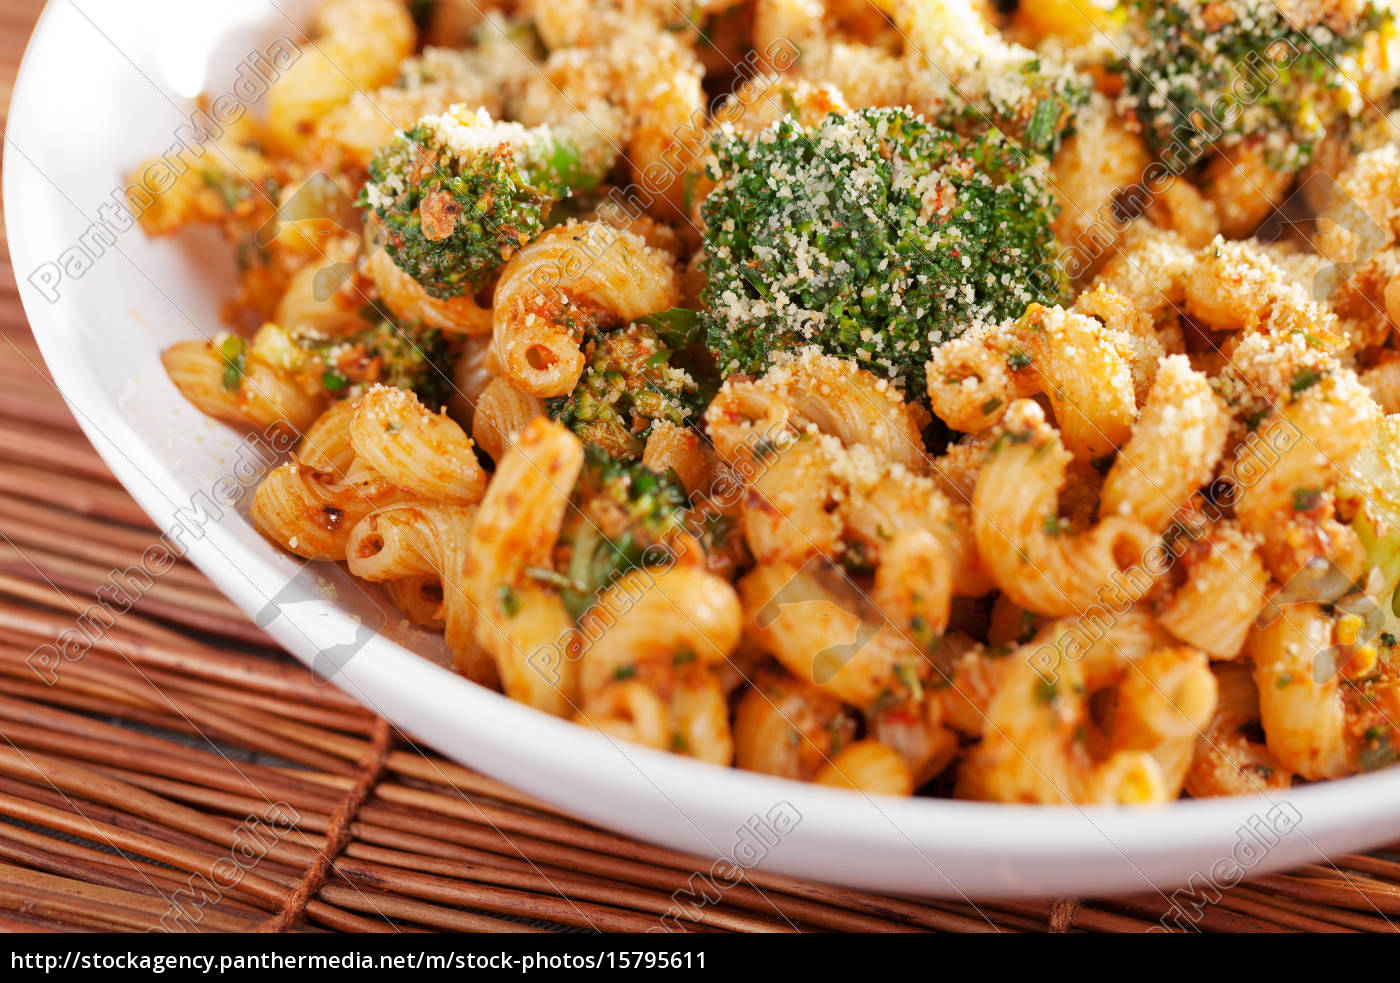 pasta, with, broccoli, pasta, with, broccoli, pasta, with - 15795611